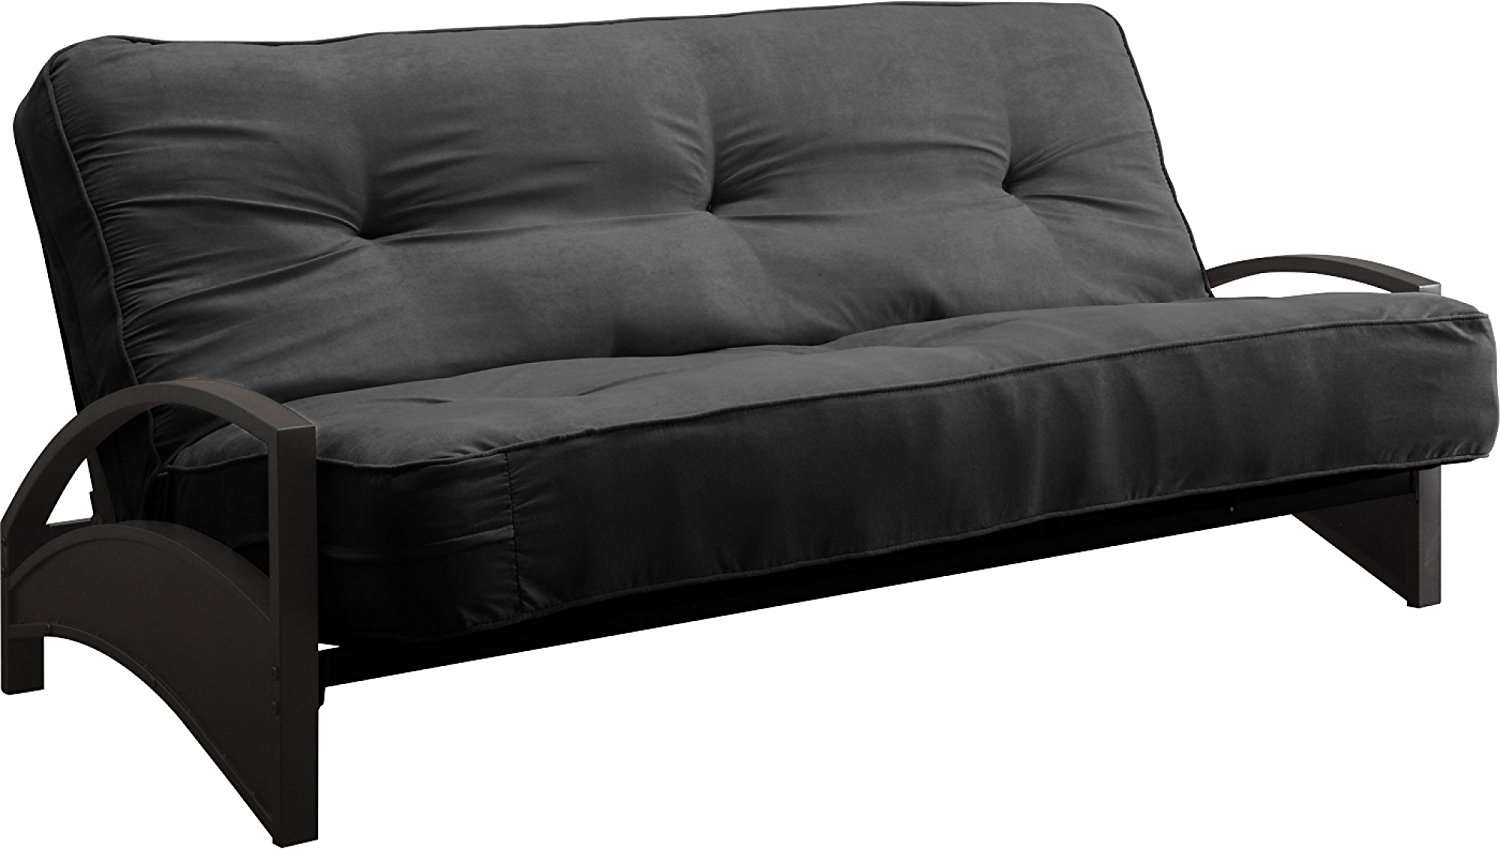 Futons Top 10 Rankings